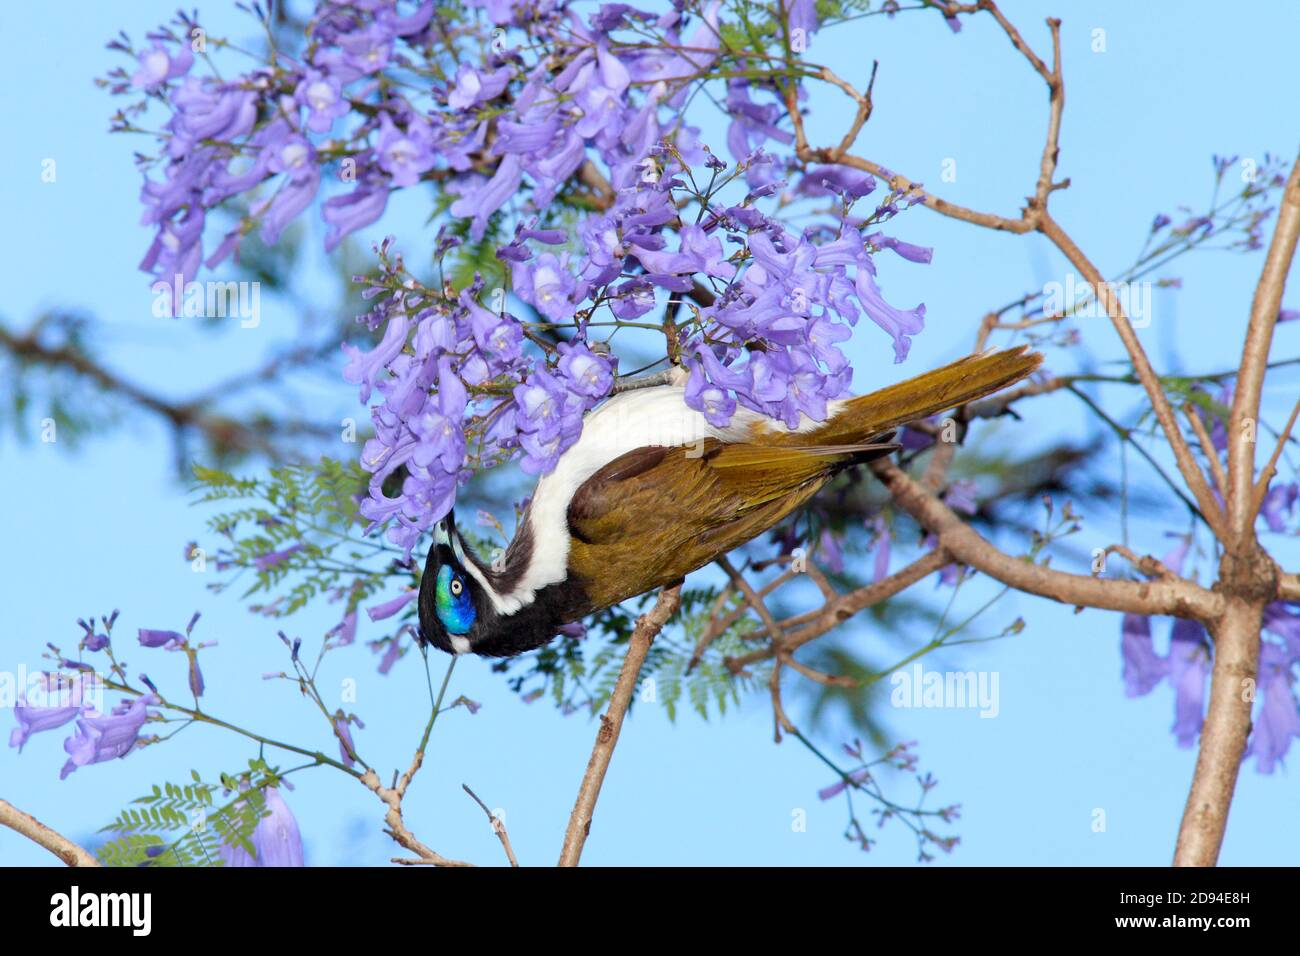 blue-faced-honeyeater-entomyzon-cyanotis-hanging-upsidedown-and-eating-nectar-from-jacaranda-flowers-coffs-harbour-nsw-australia-2D94E8H.jpg